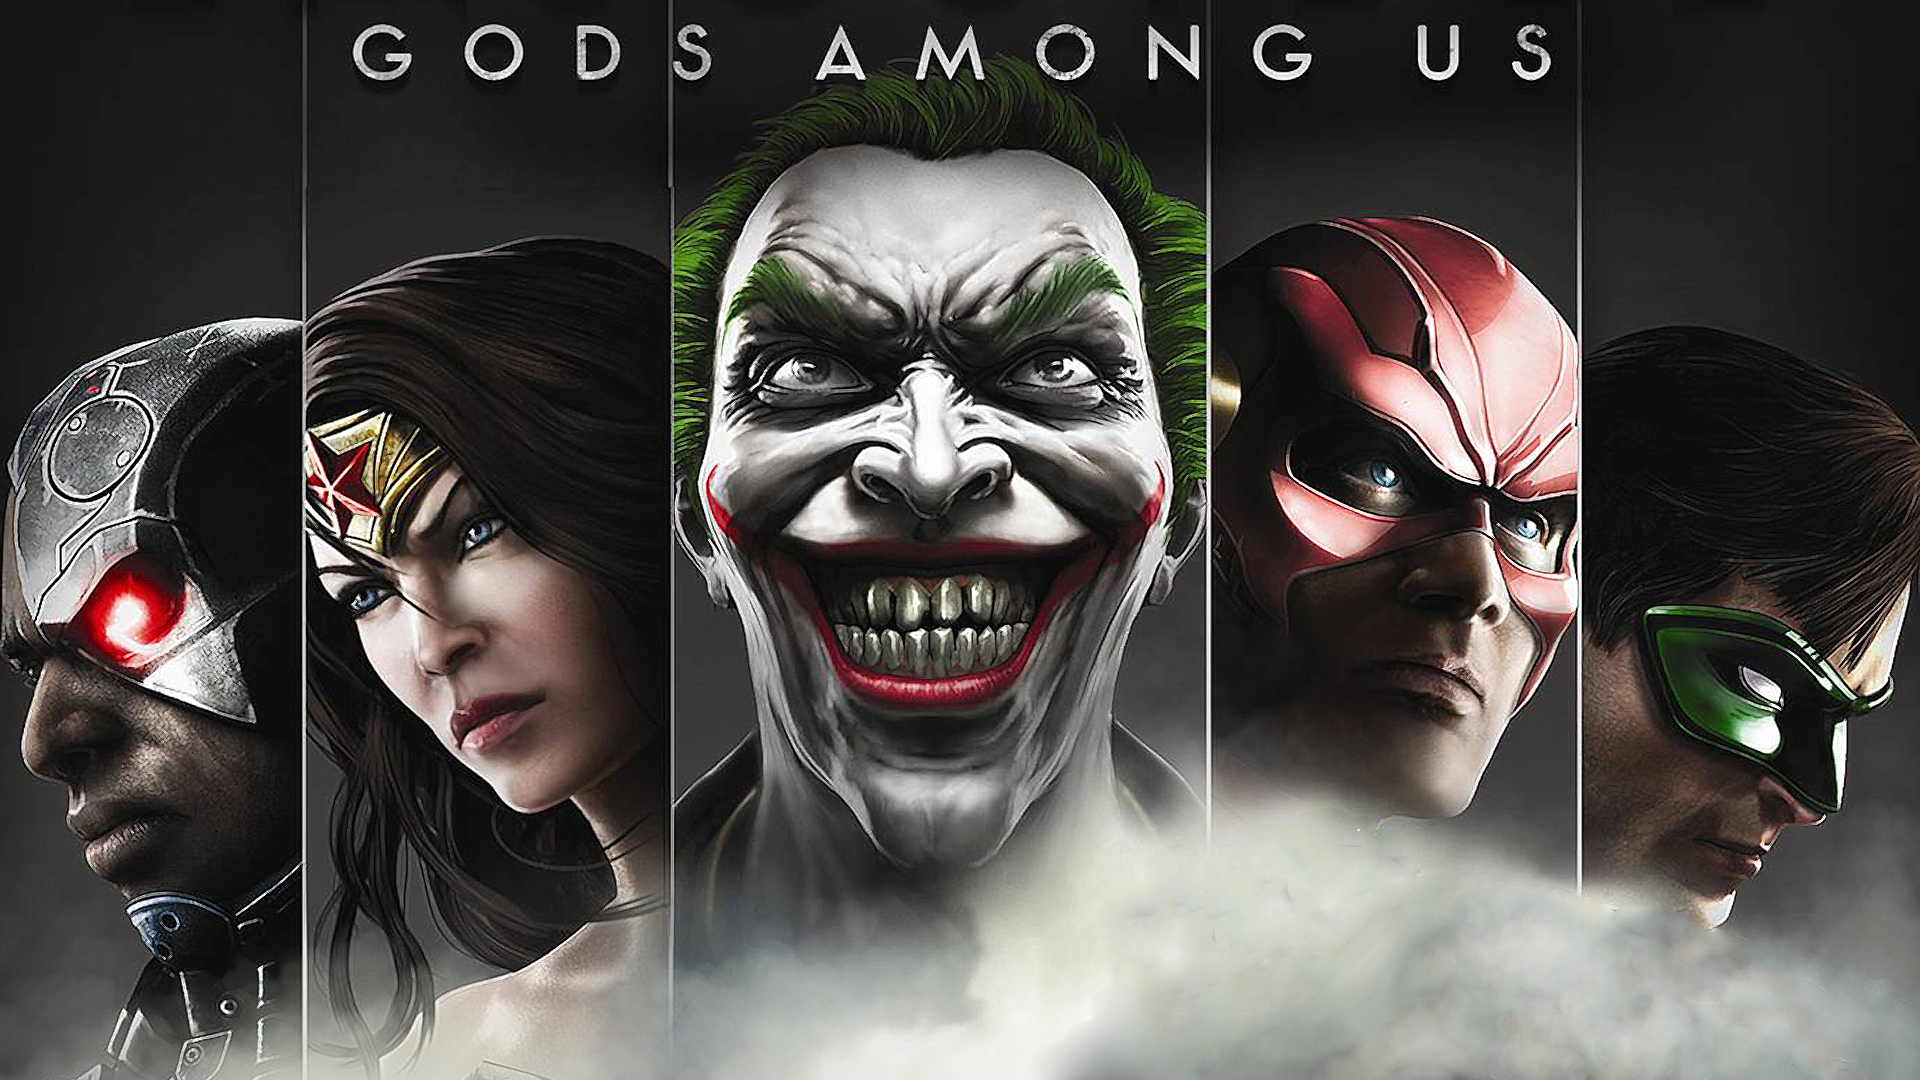 Injustice Gods Among Us   Ultimate Edition not just people but gods 1920x1080